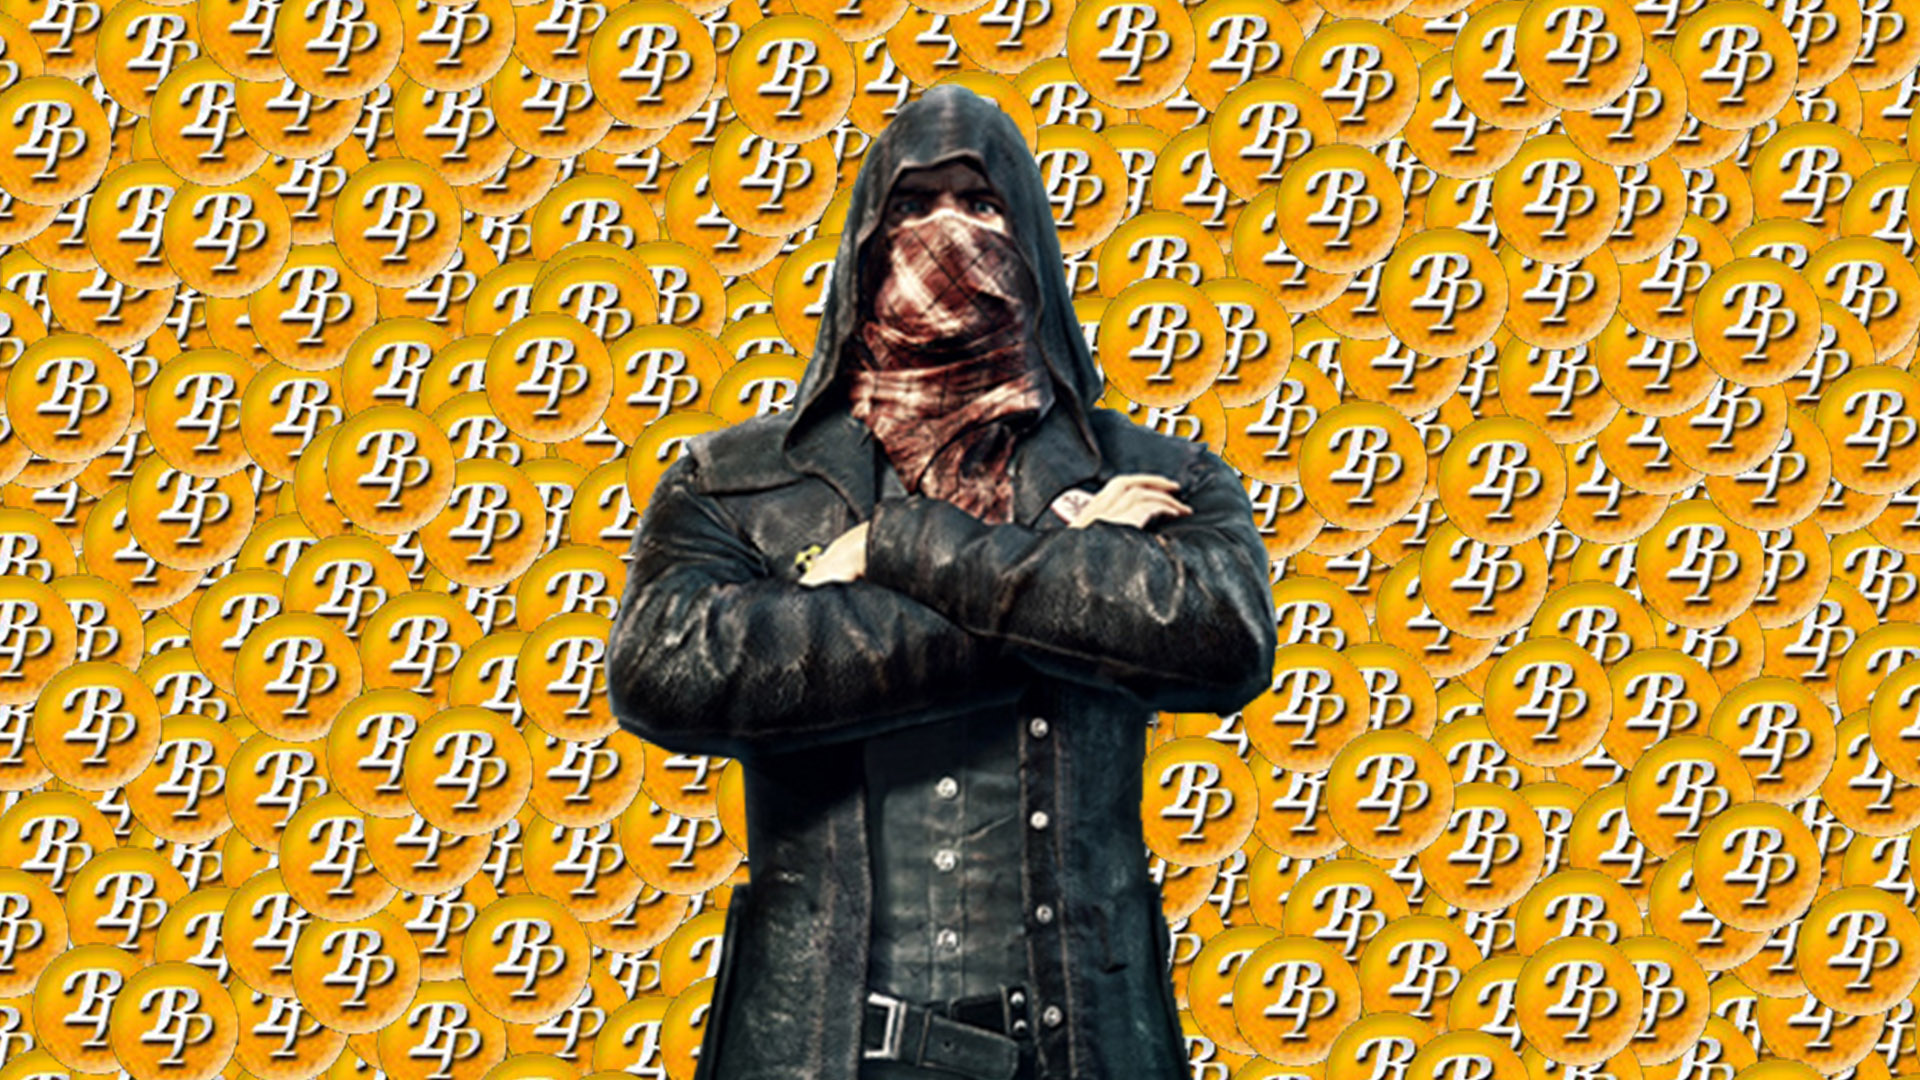 Make it rain Battle Points by buying them through the Steam Market!